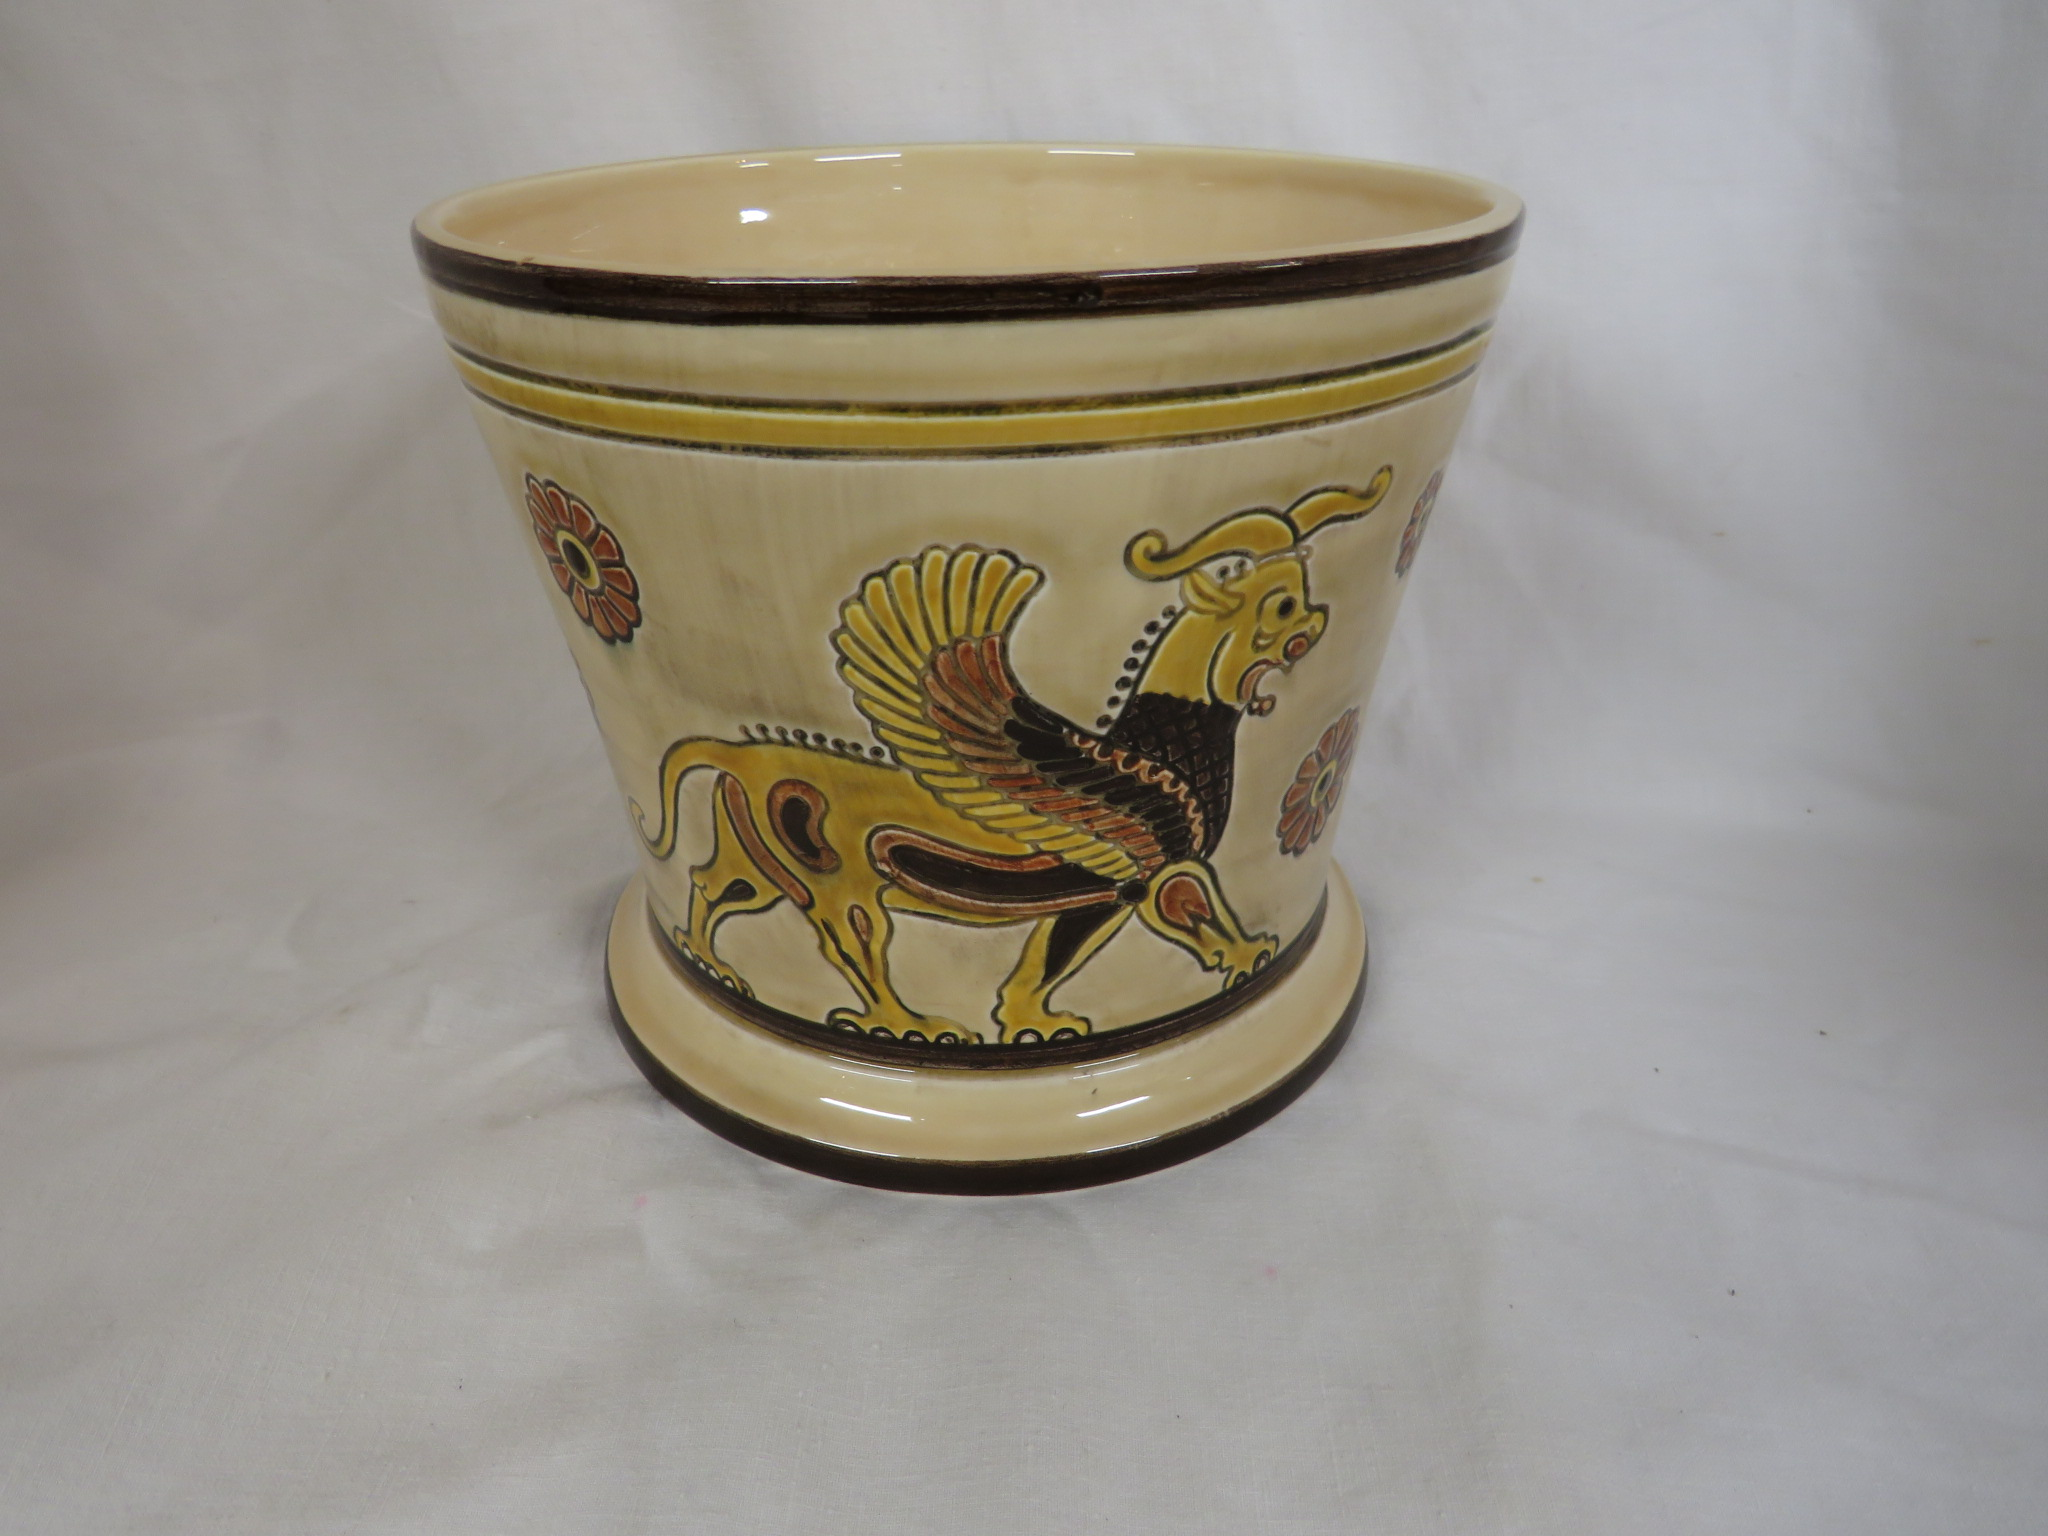 Lot 97 - Sylvac pottery Assyrian pattern - two vases, decorated in browns and yellows with winged beasts